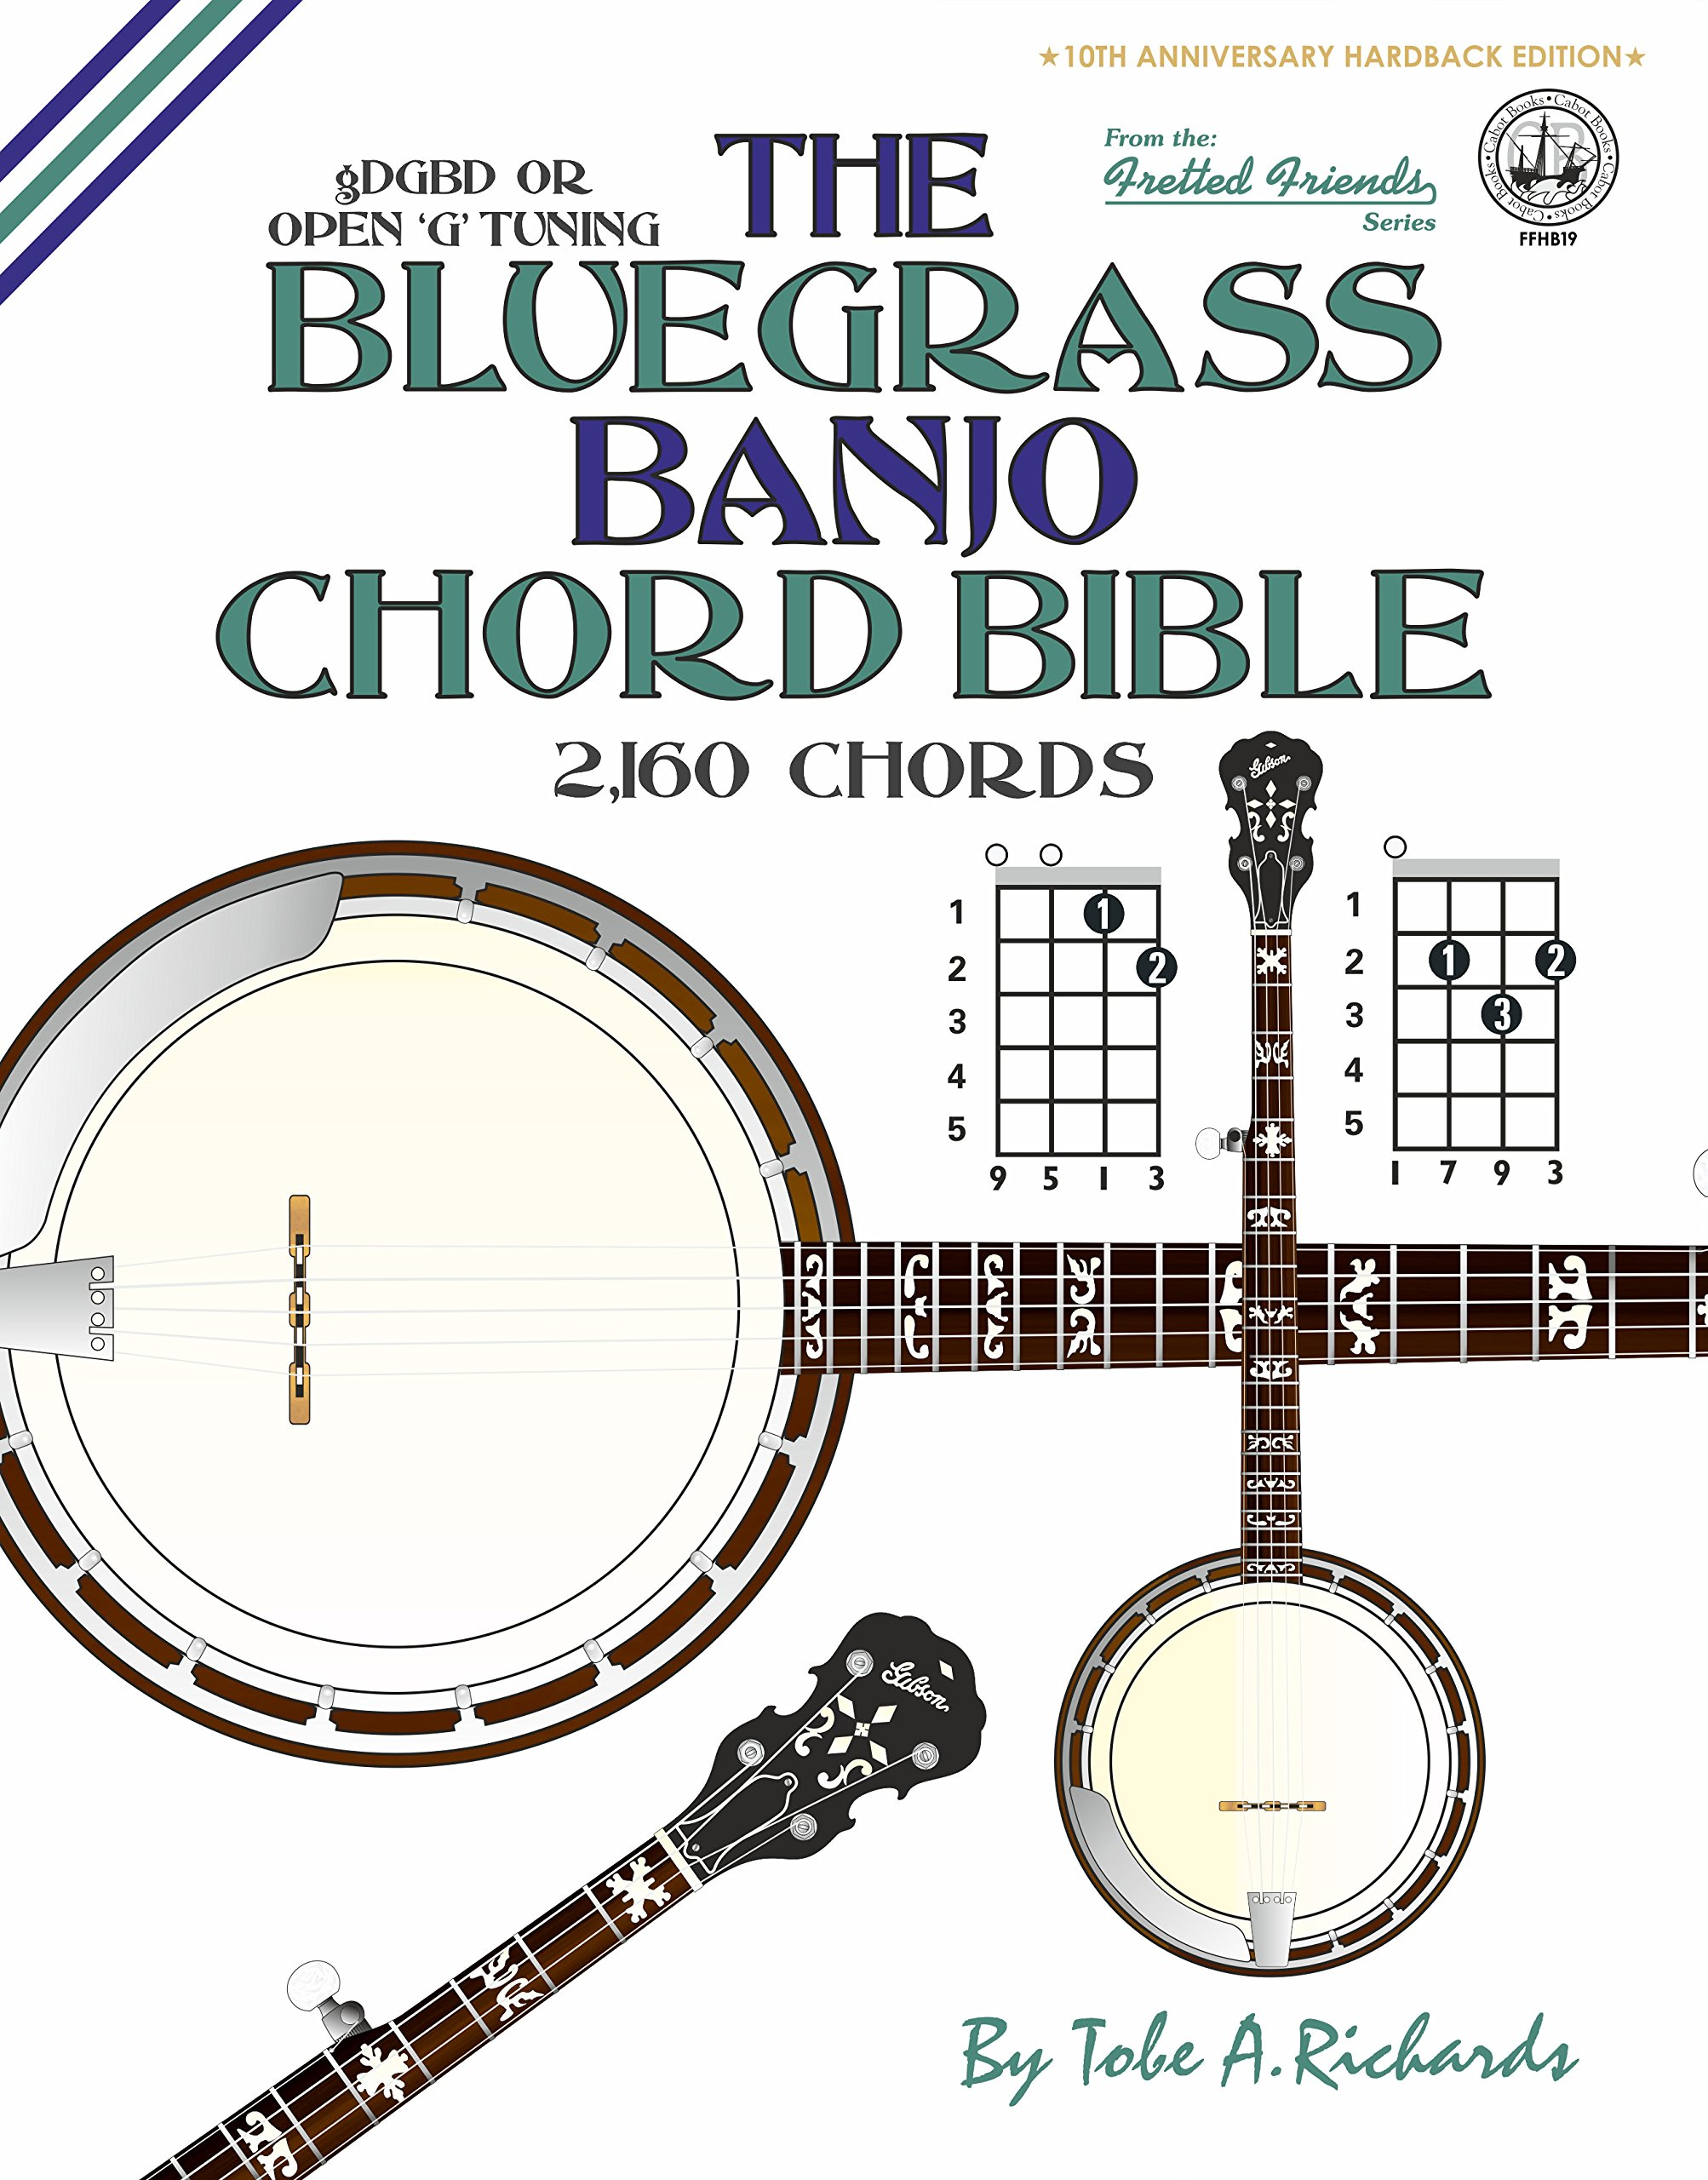 The Bluegrass Banjo Chord Bible: Open 'G' Tuning 2,160 Chords (Fretted Friends Series)